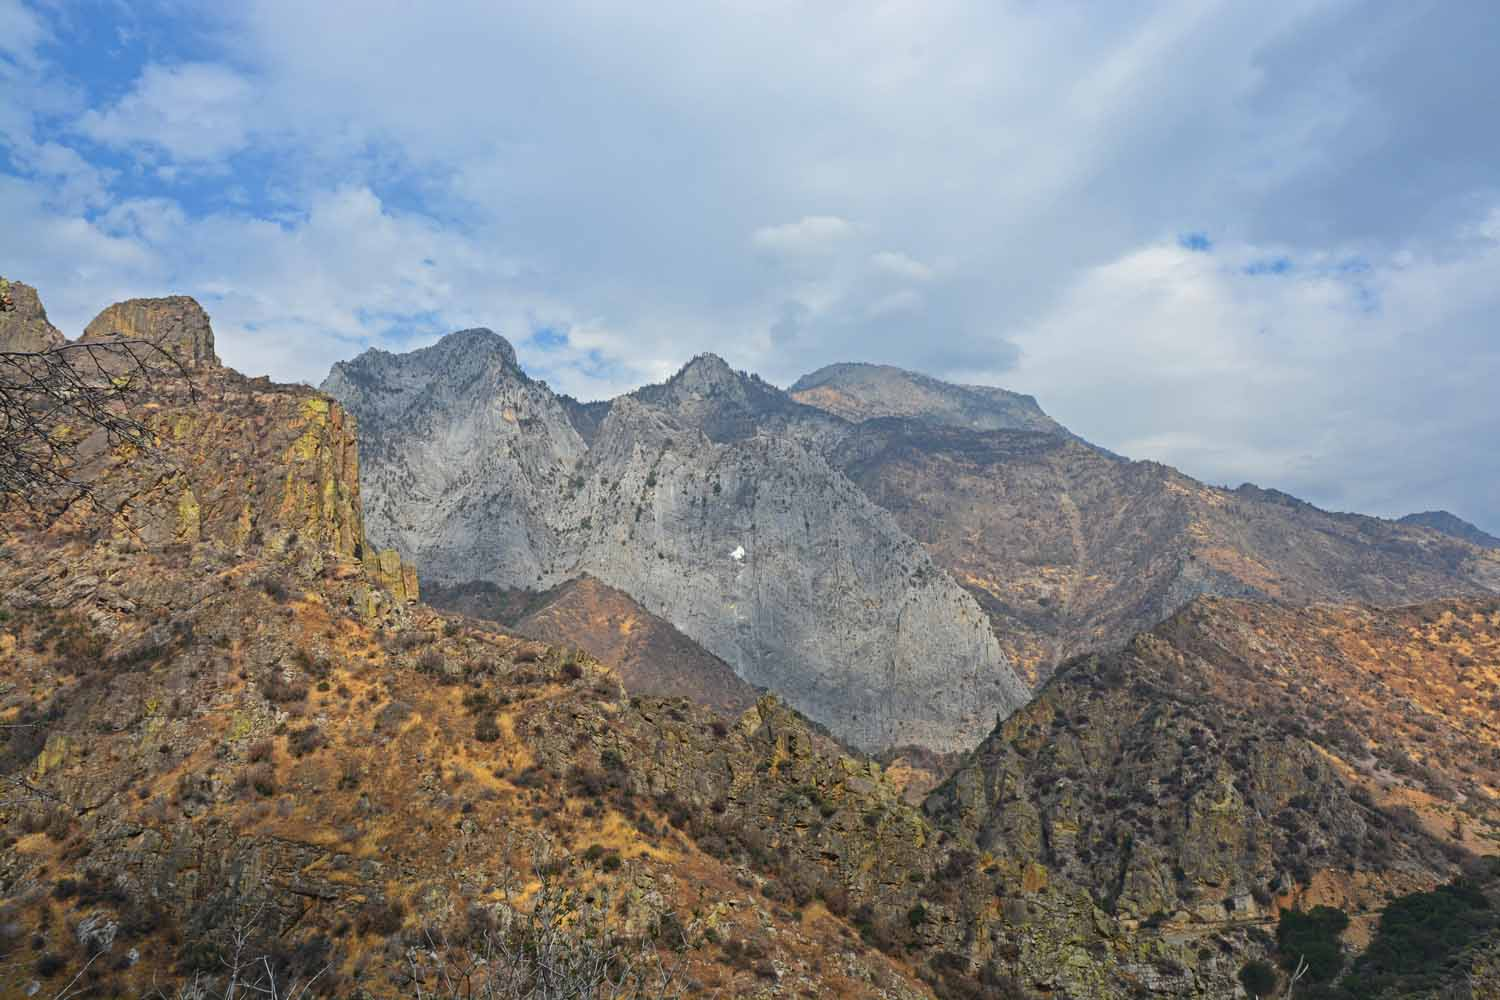 The mountains are always different in size and color...Kings Canyon was no exception